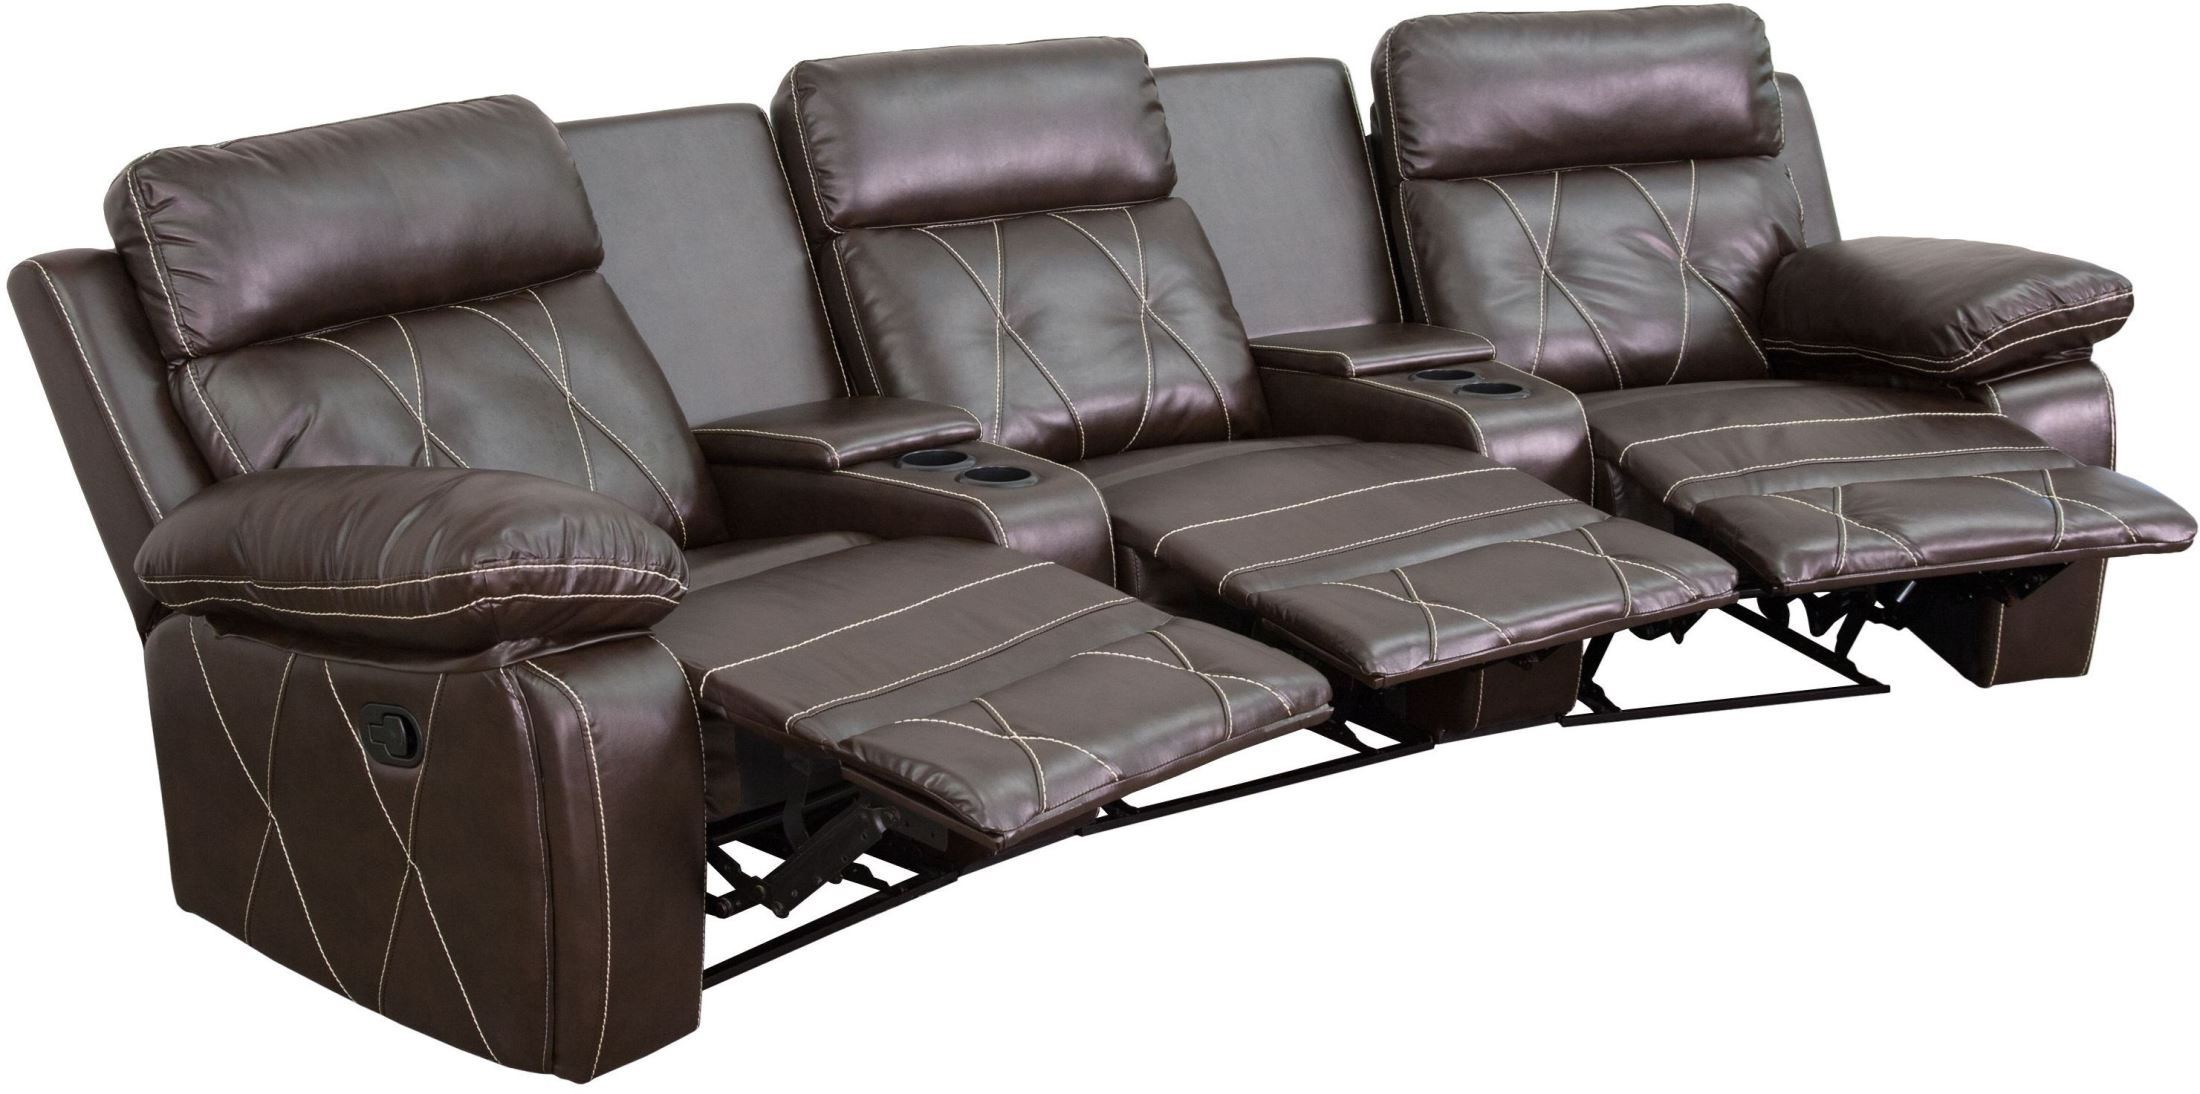 theater chairs with cup holders how to build a adirondack chair reel comfort series 3 seat reclining brown leather